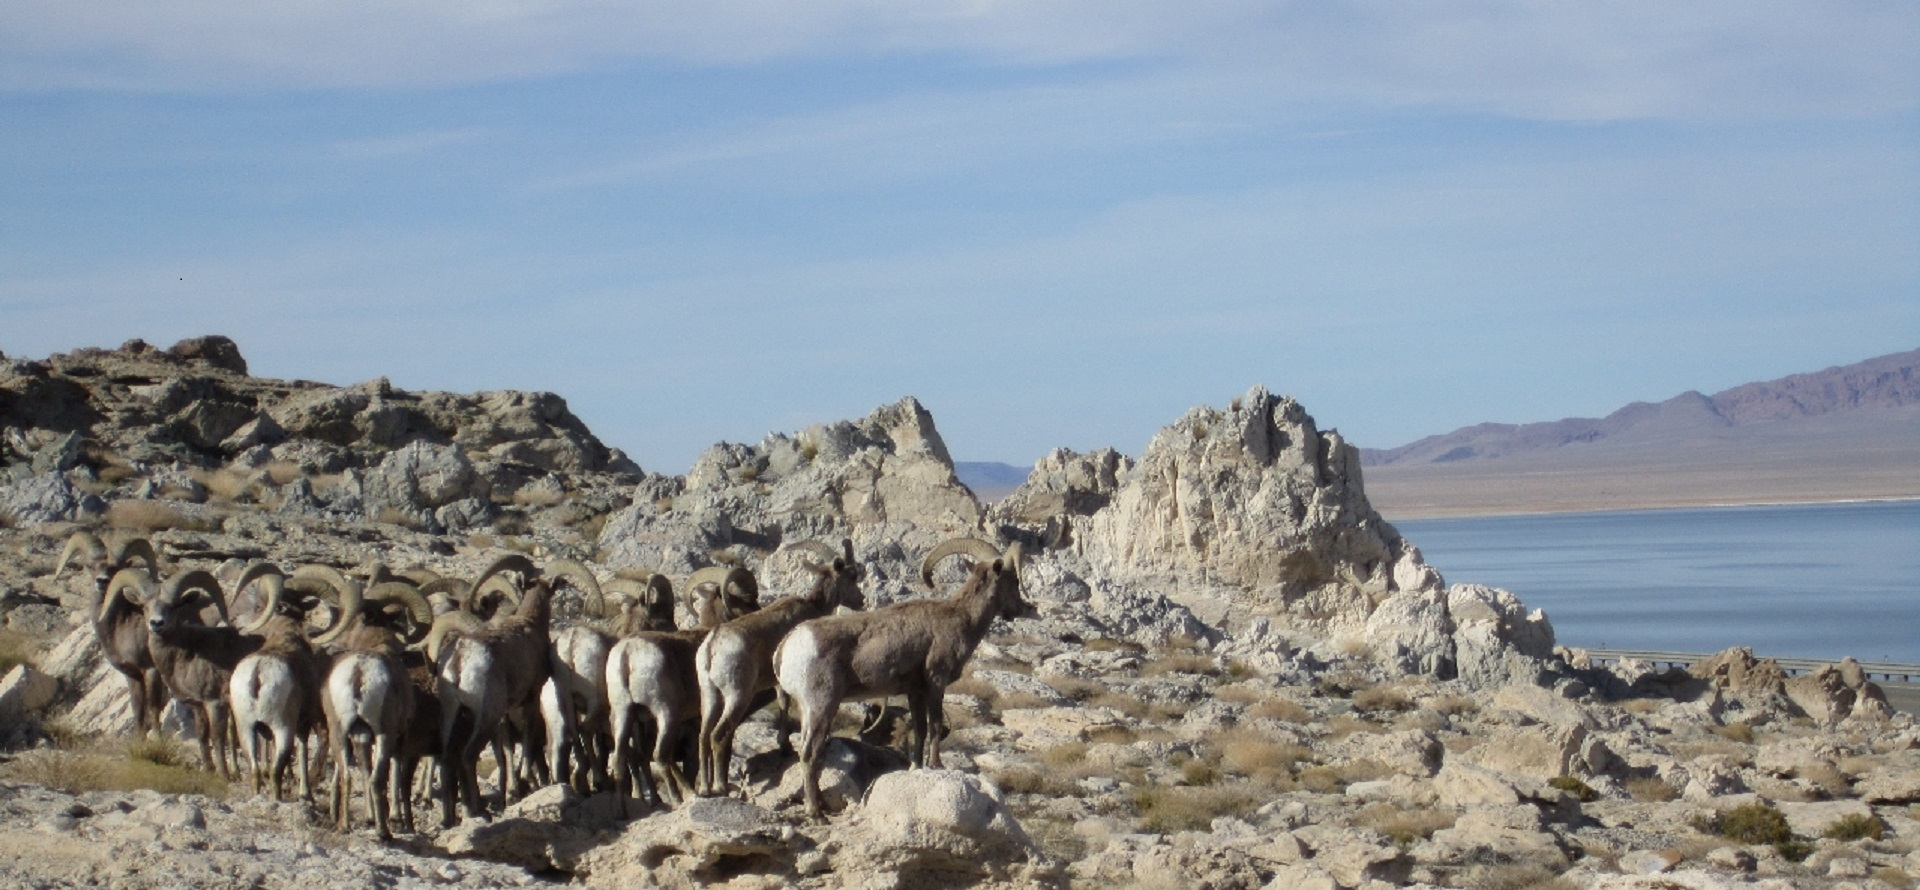 1 Big horn sheep